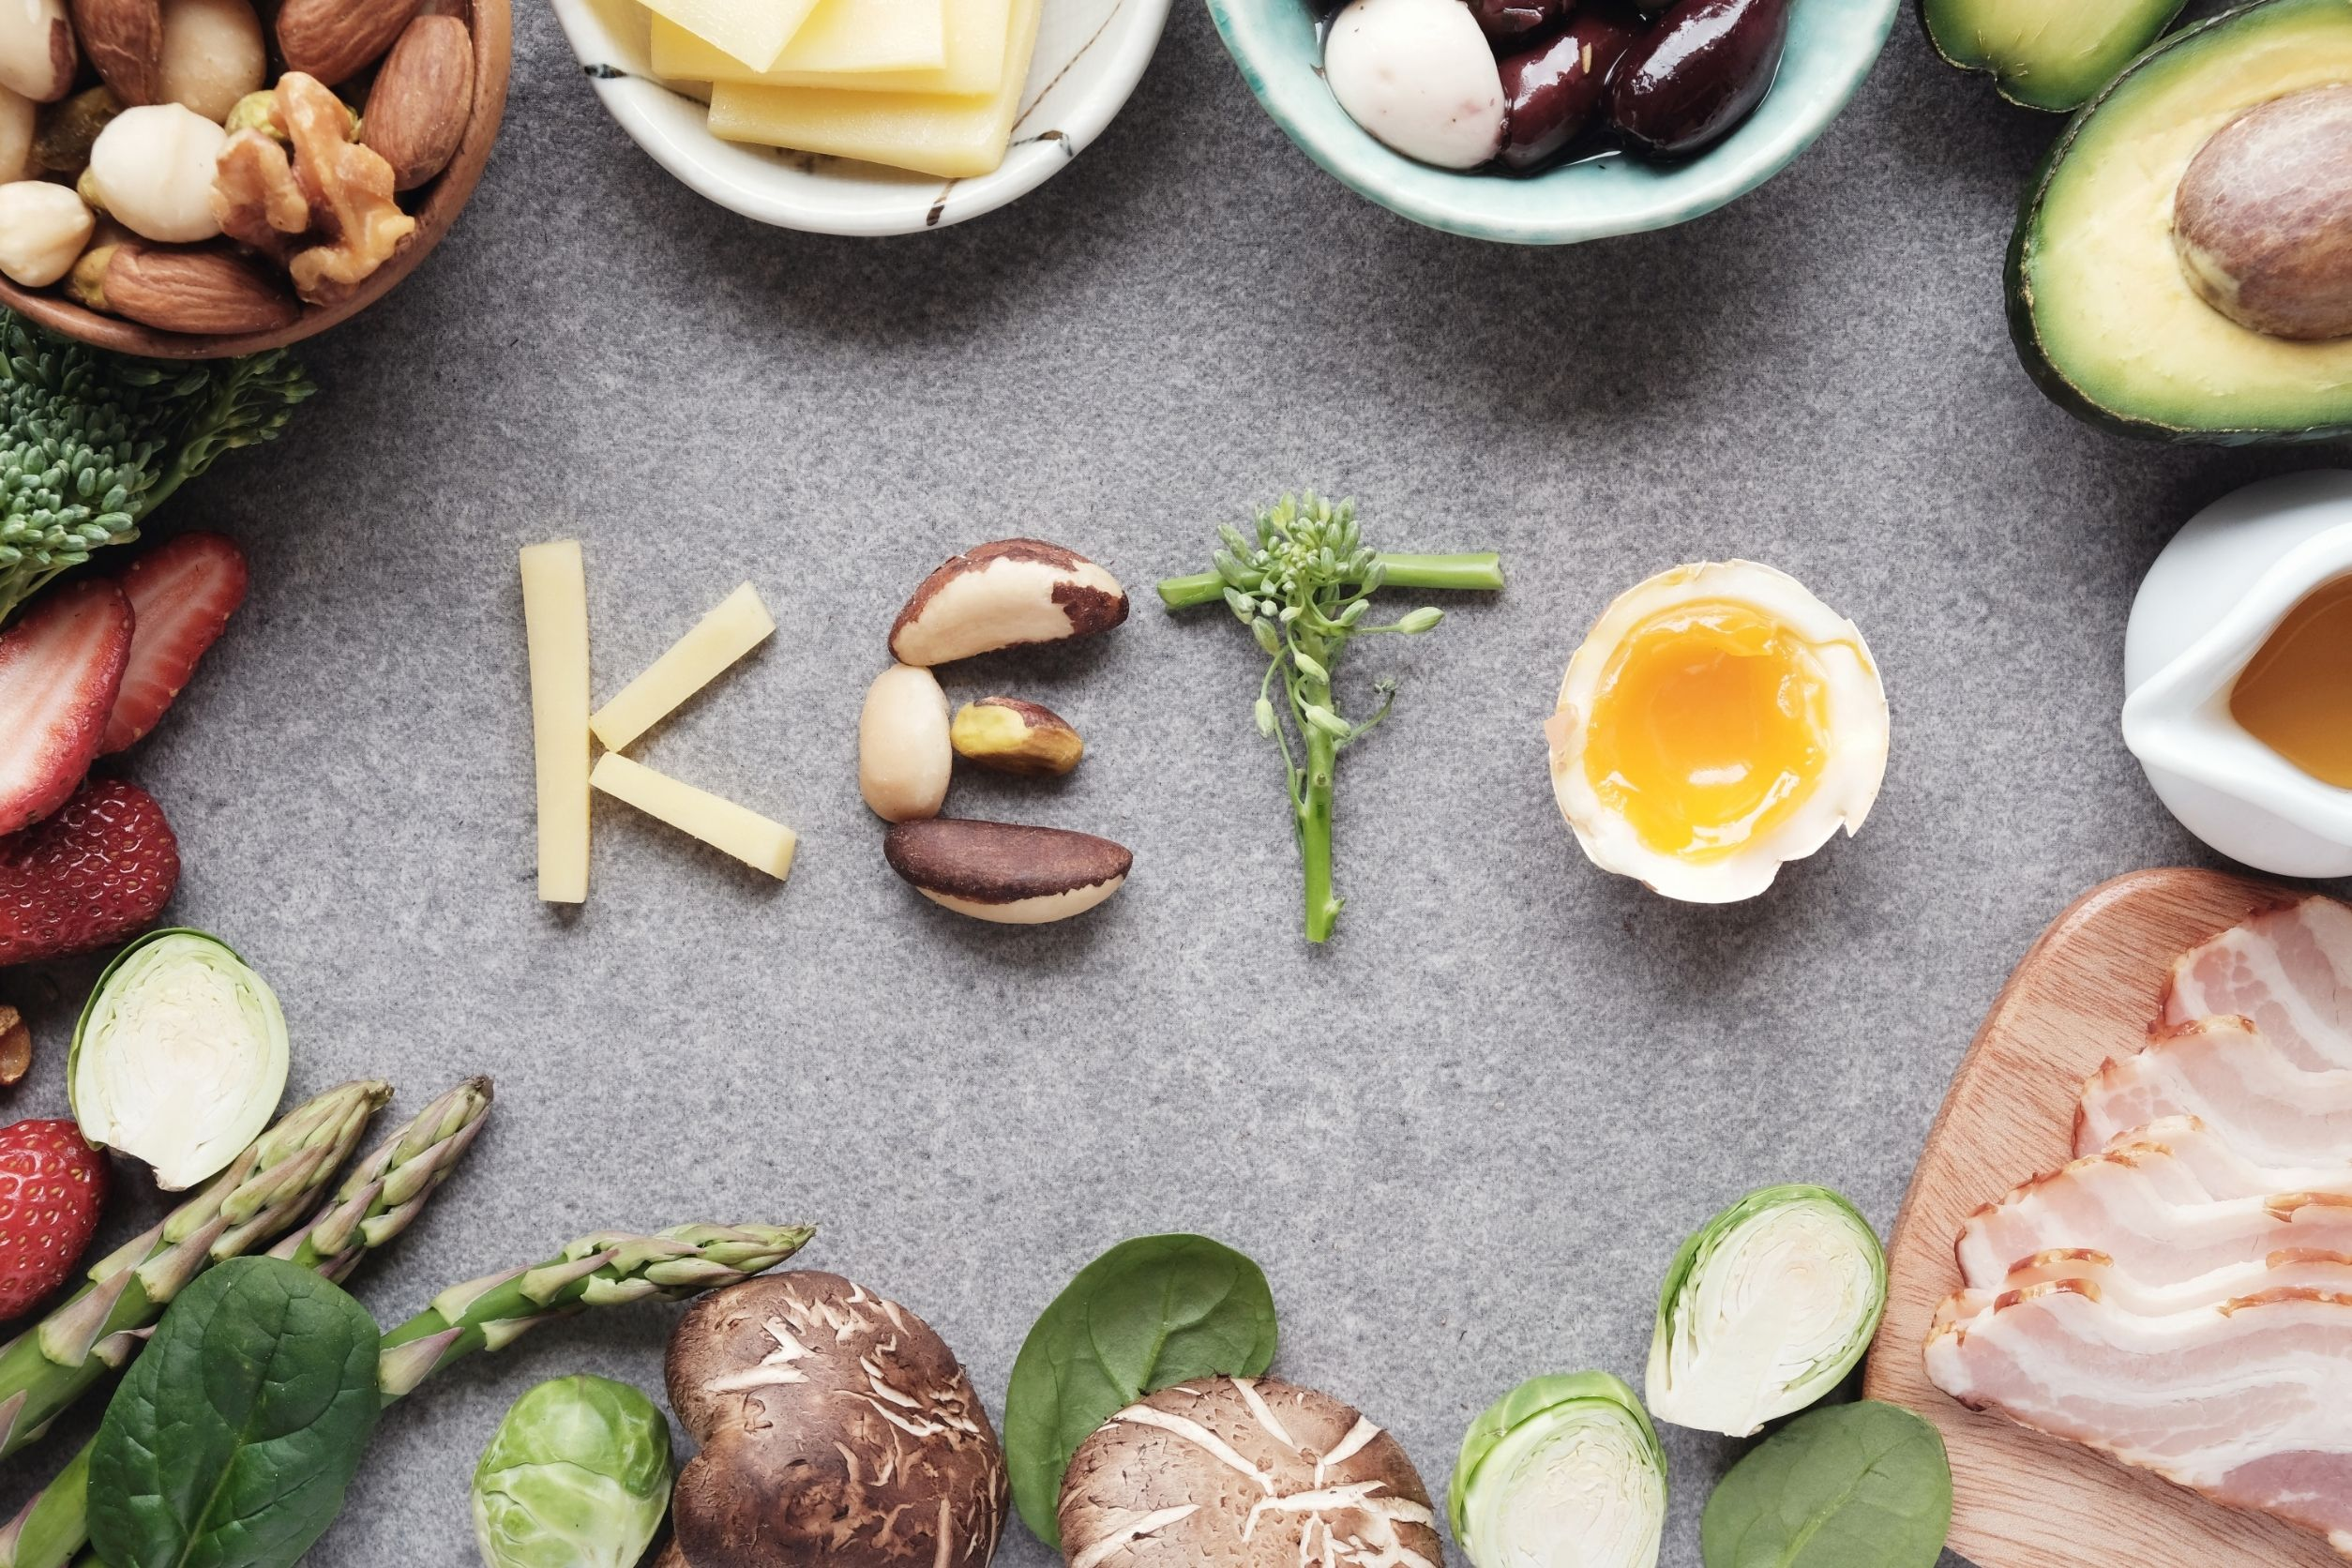 Keto diet foods like eggs, berries, bacon, cheese and vegetables